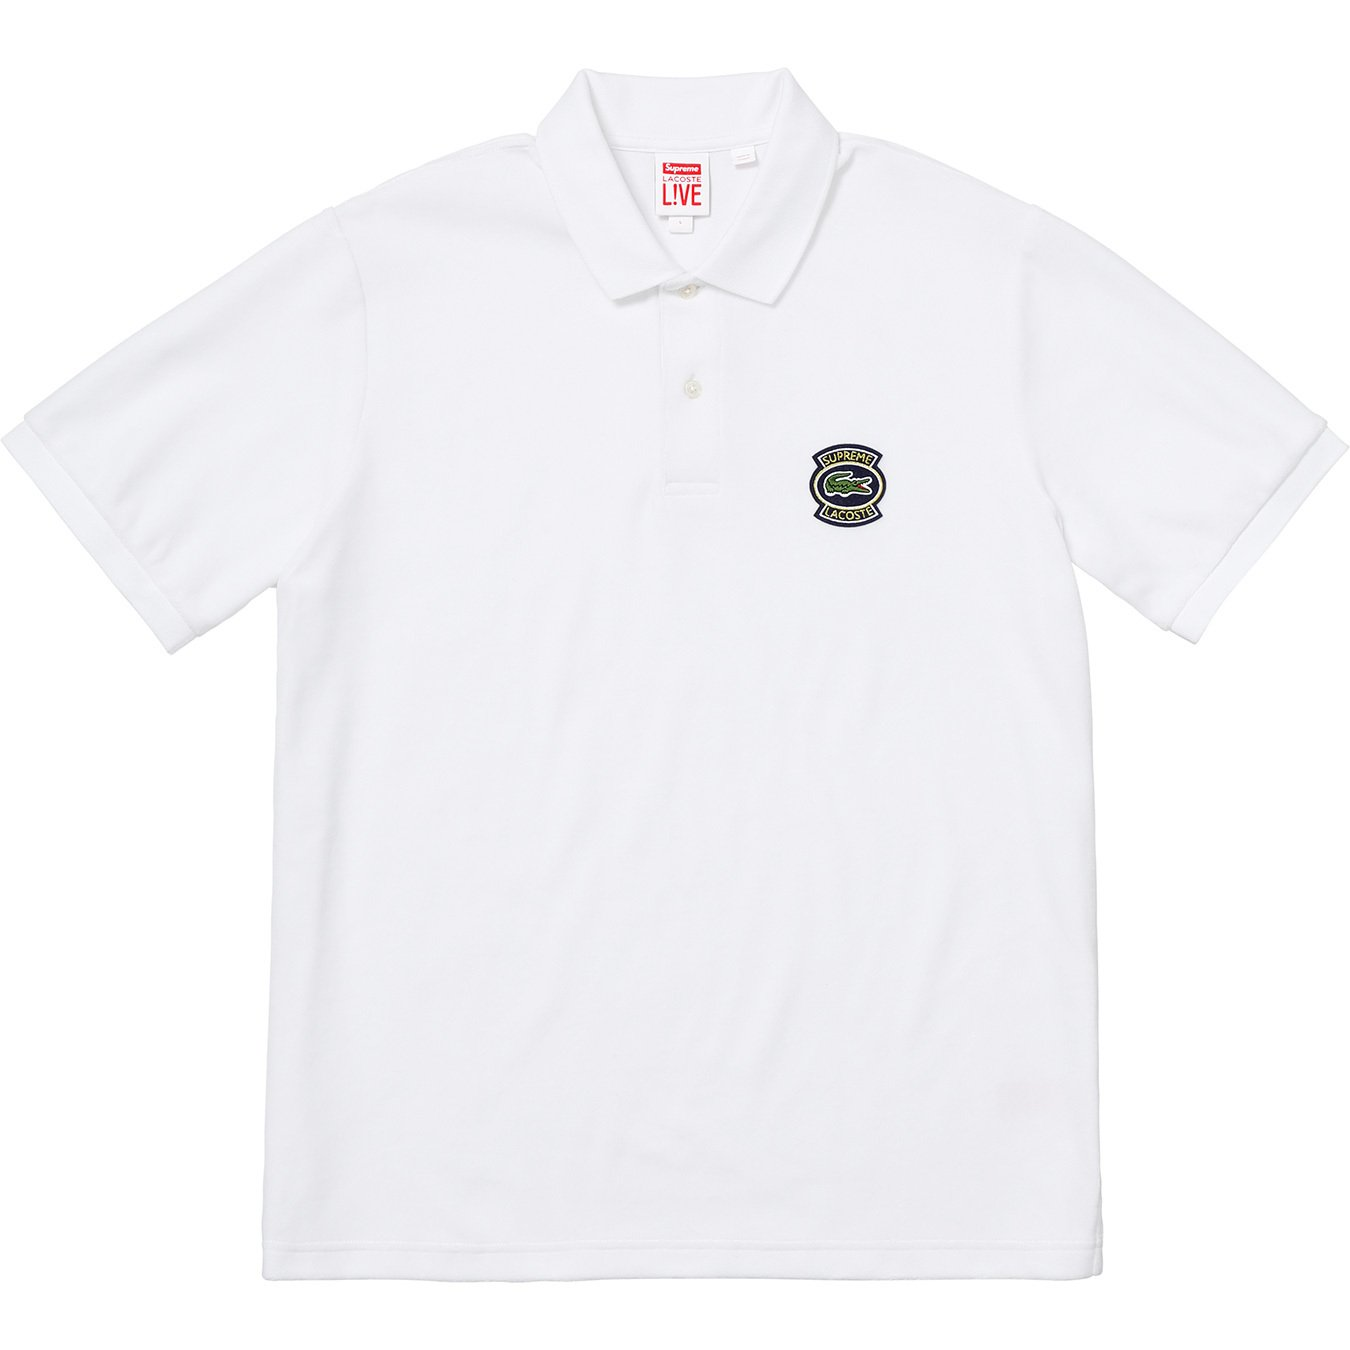 supreme-lacoste-18ss-collaboration-release-201180421-velour-polo